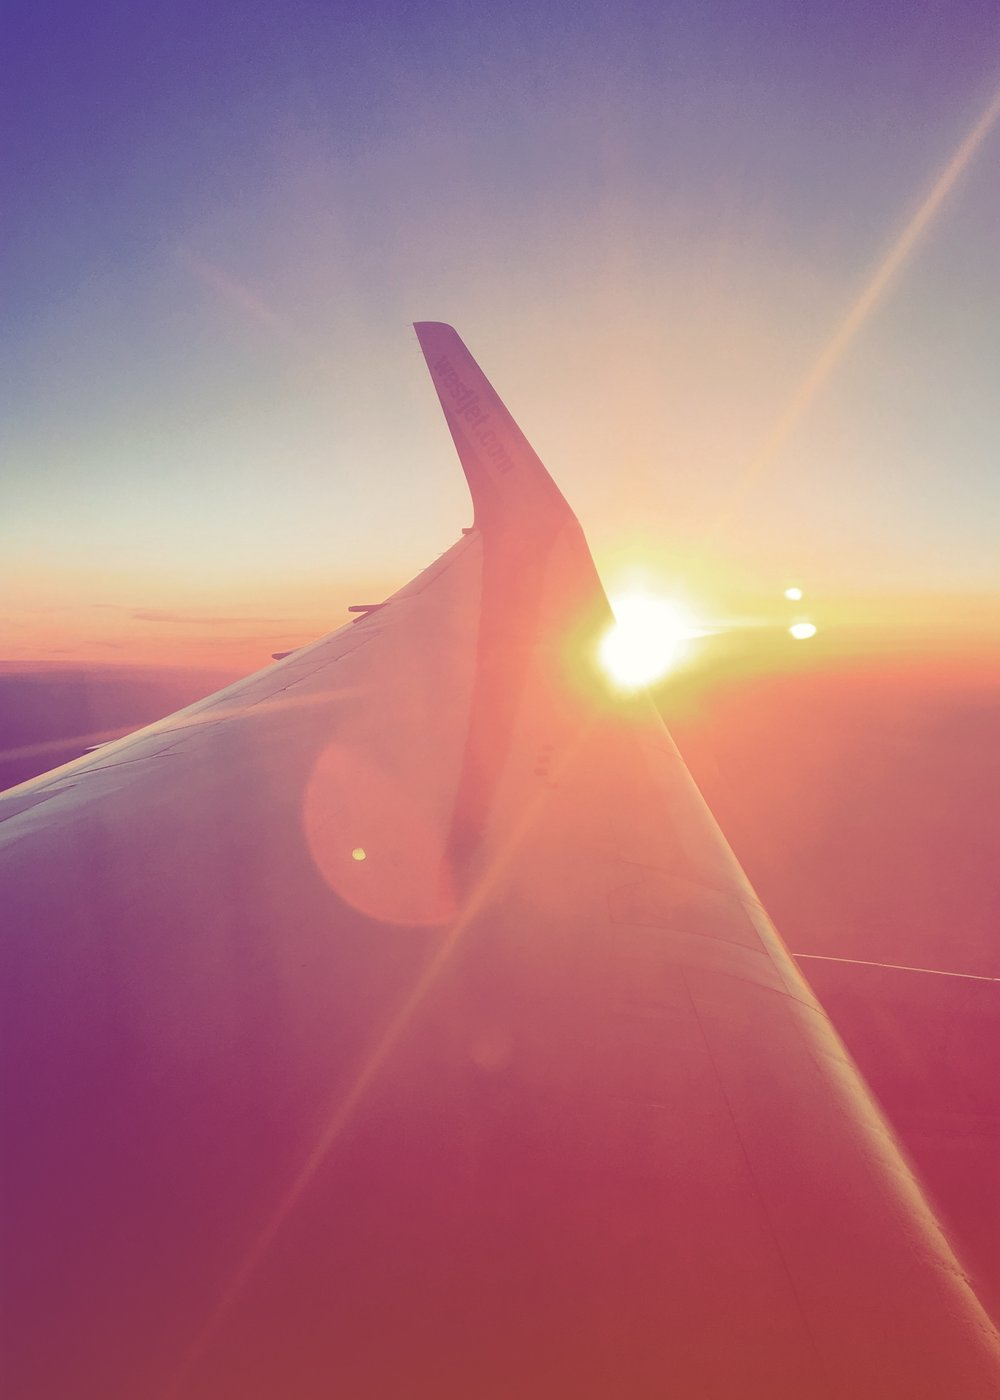 Sunrise on the flight to London